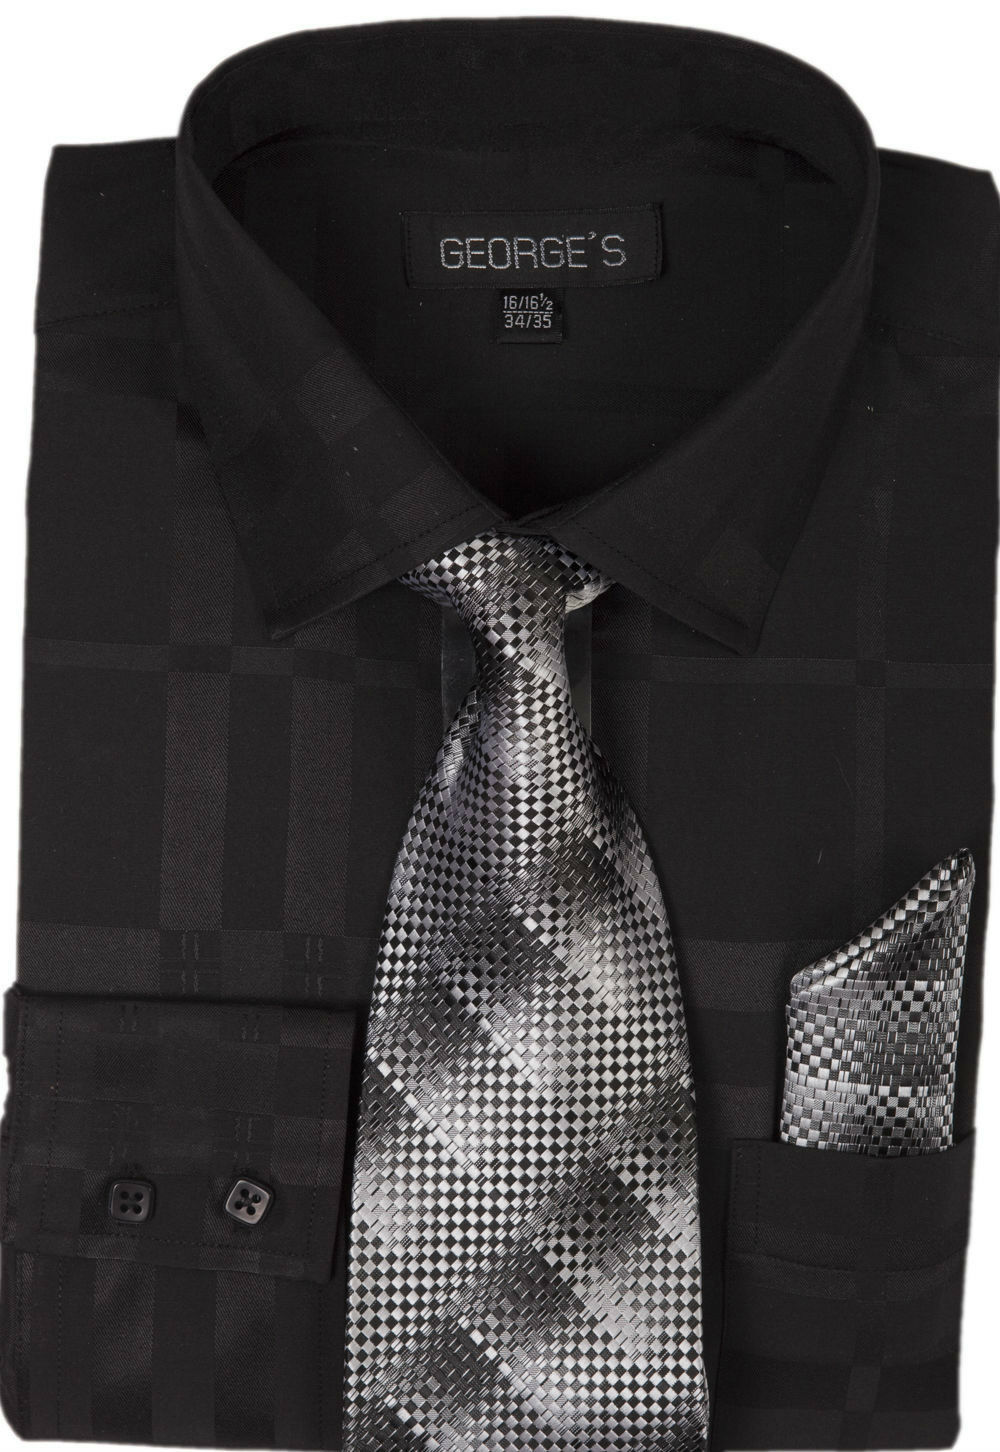 Milano Moda Men Shirt AH623-Black - Church Suits For Less